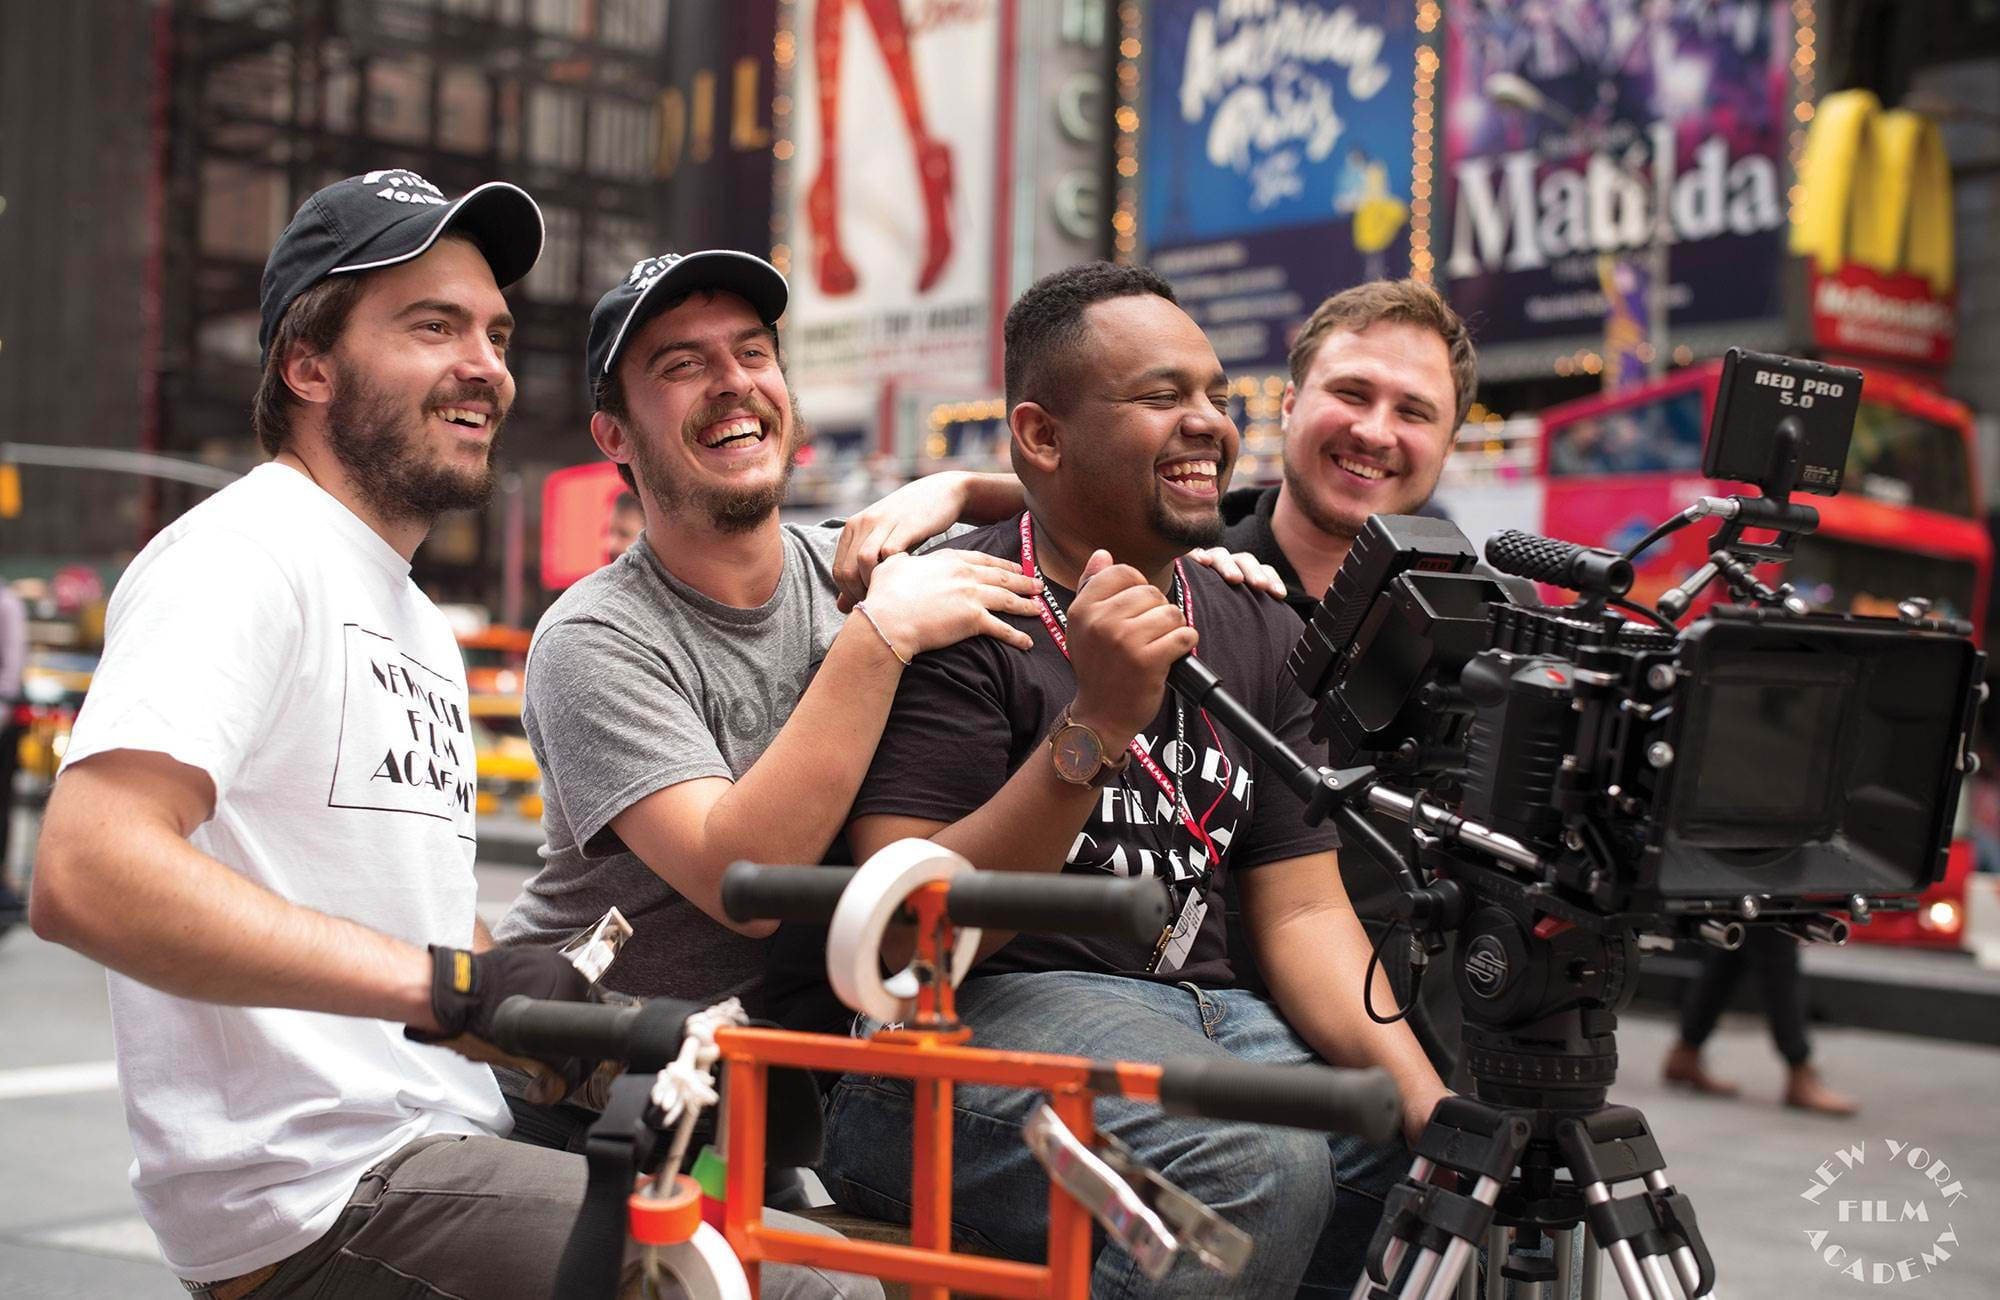 New York Film Academy Students Filming On Times Square